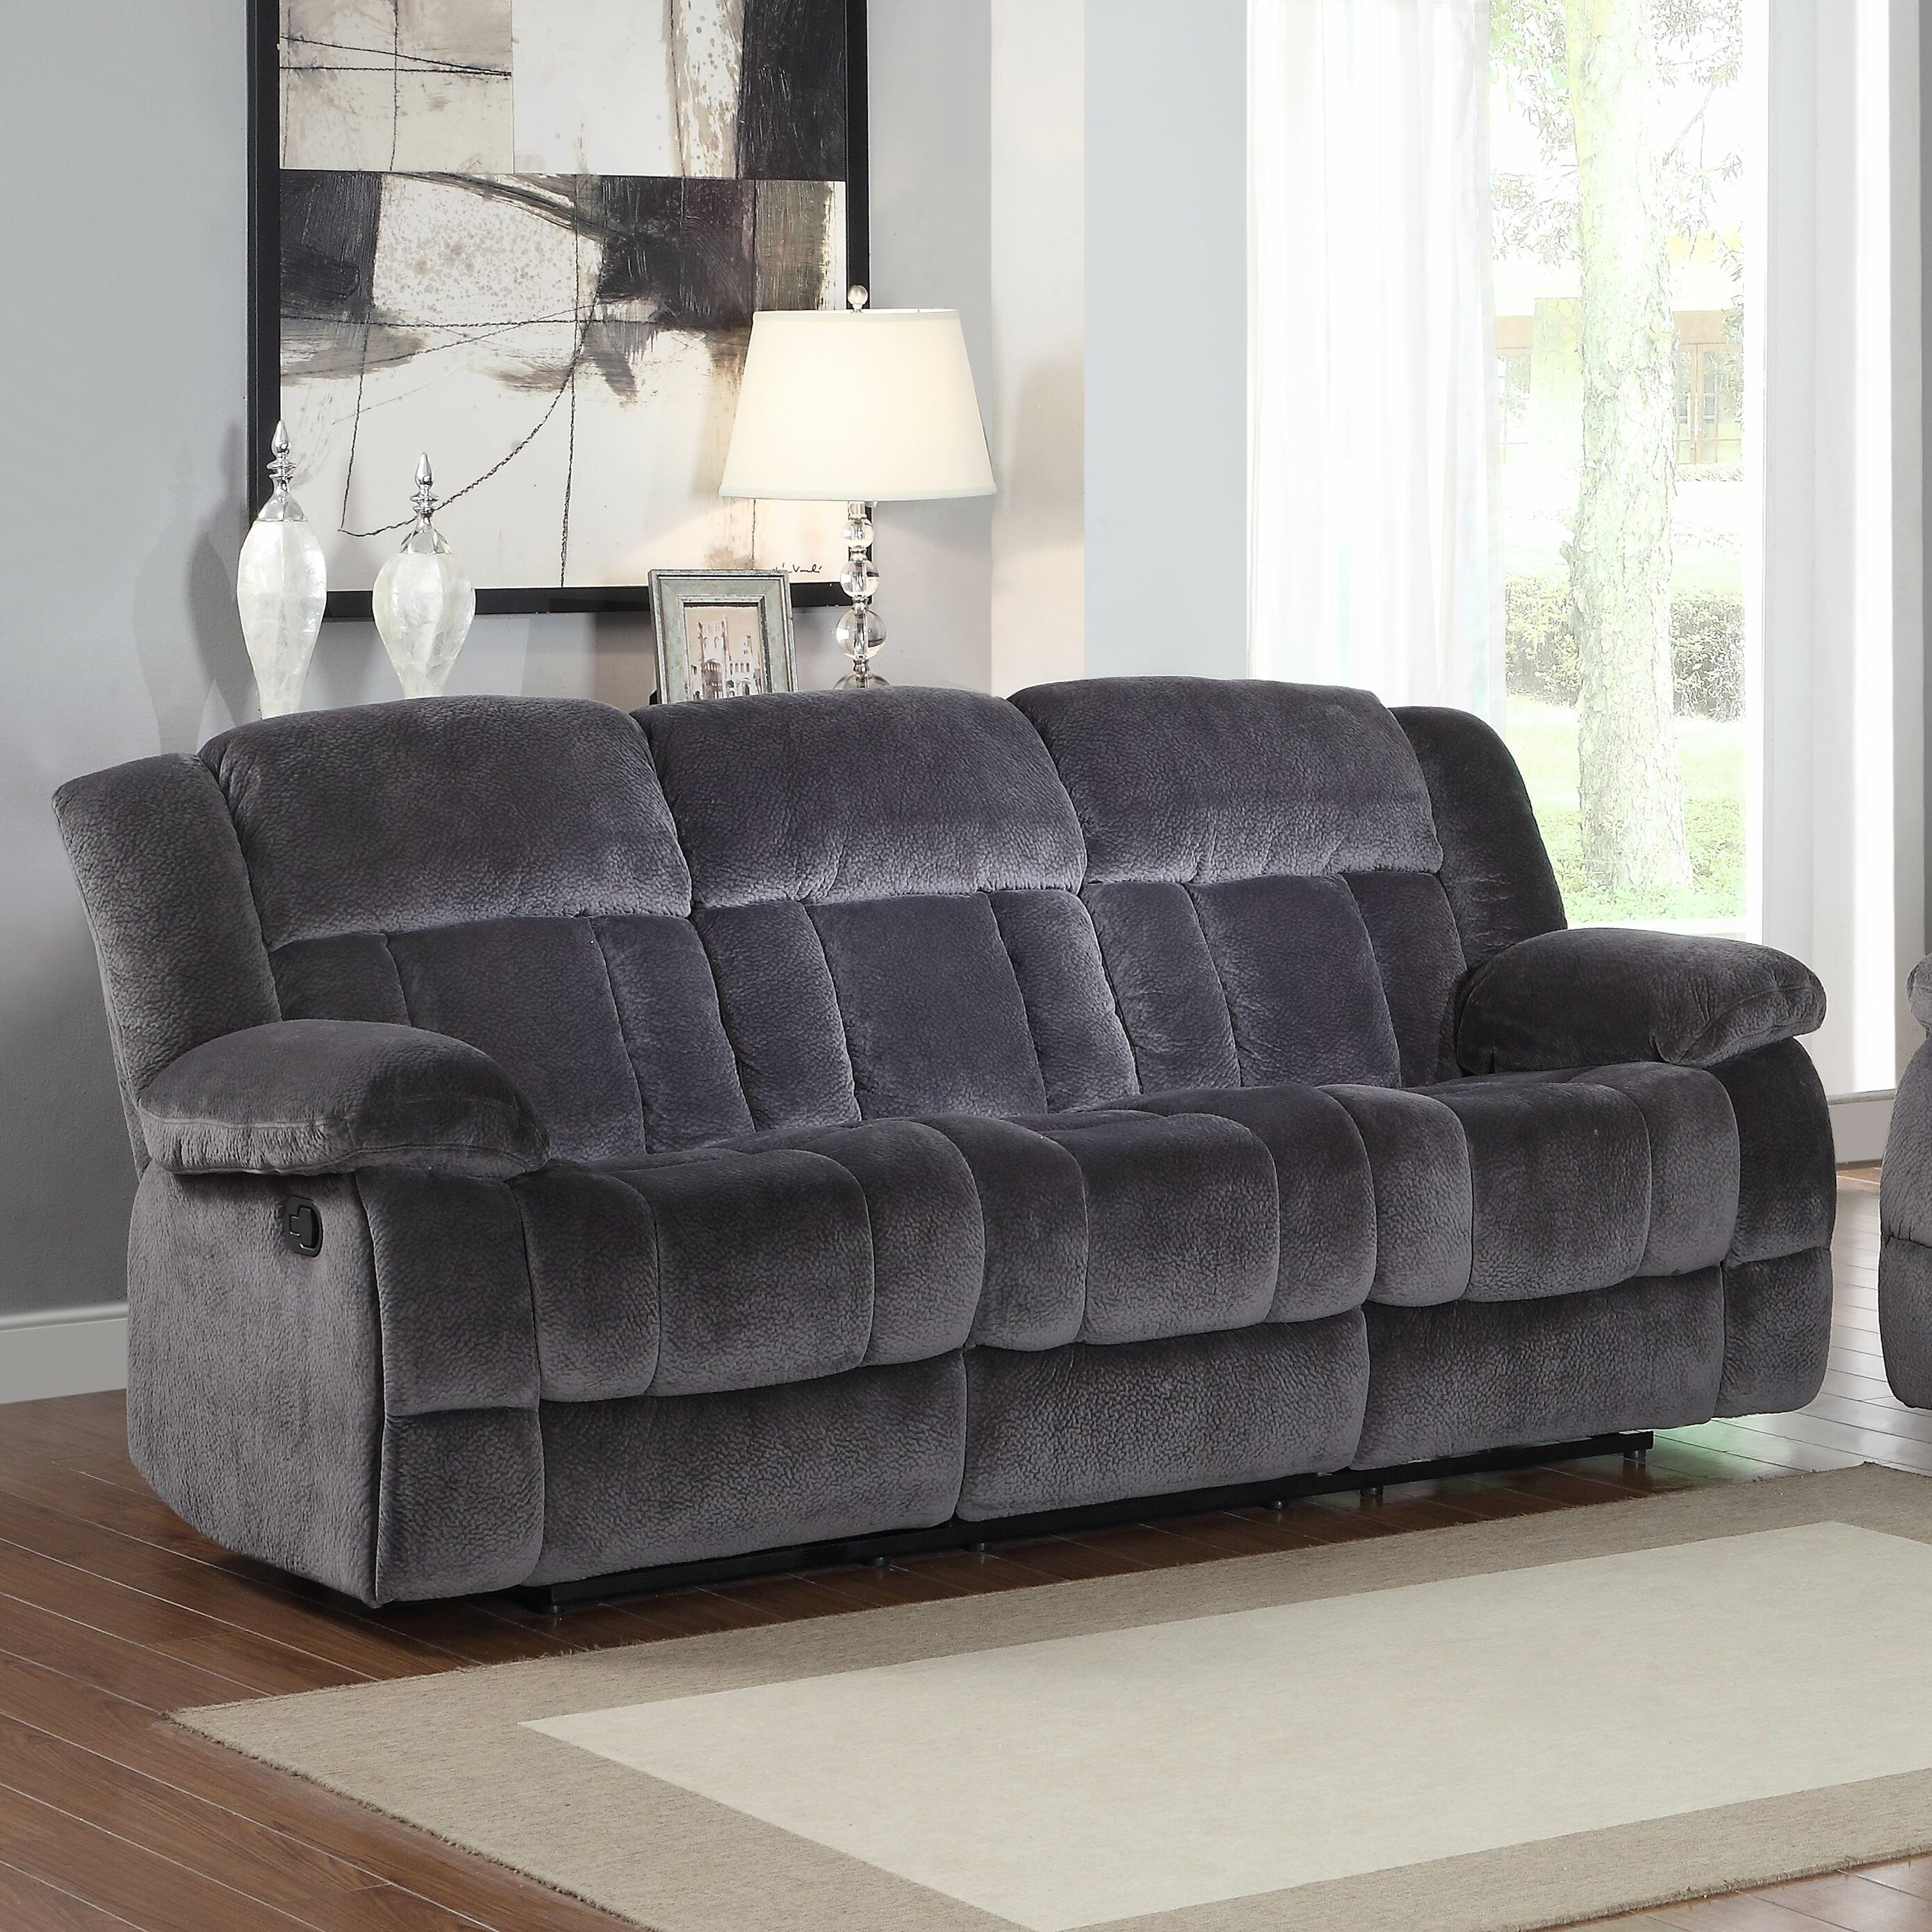 Darby Home Co Dale Double Reclining Sofa Amp Reviews Wayfair